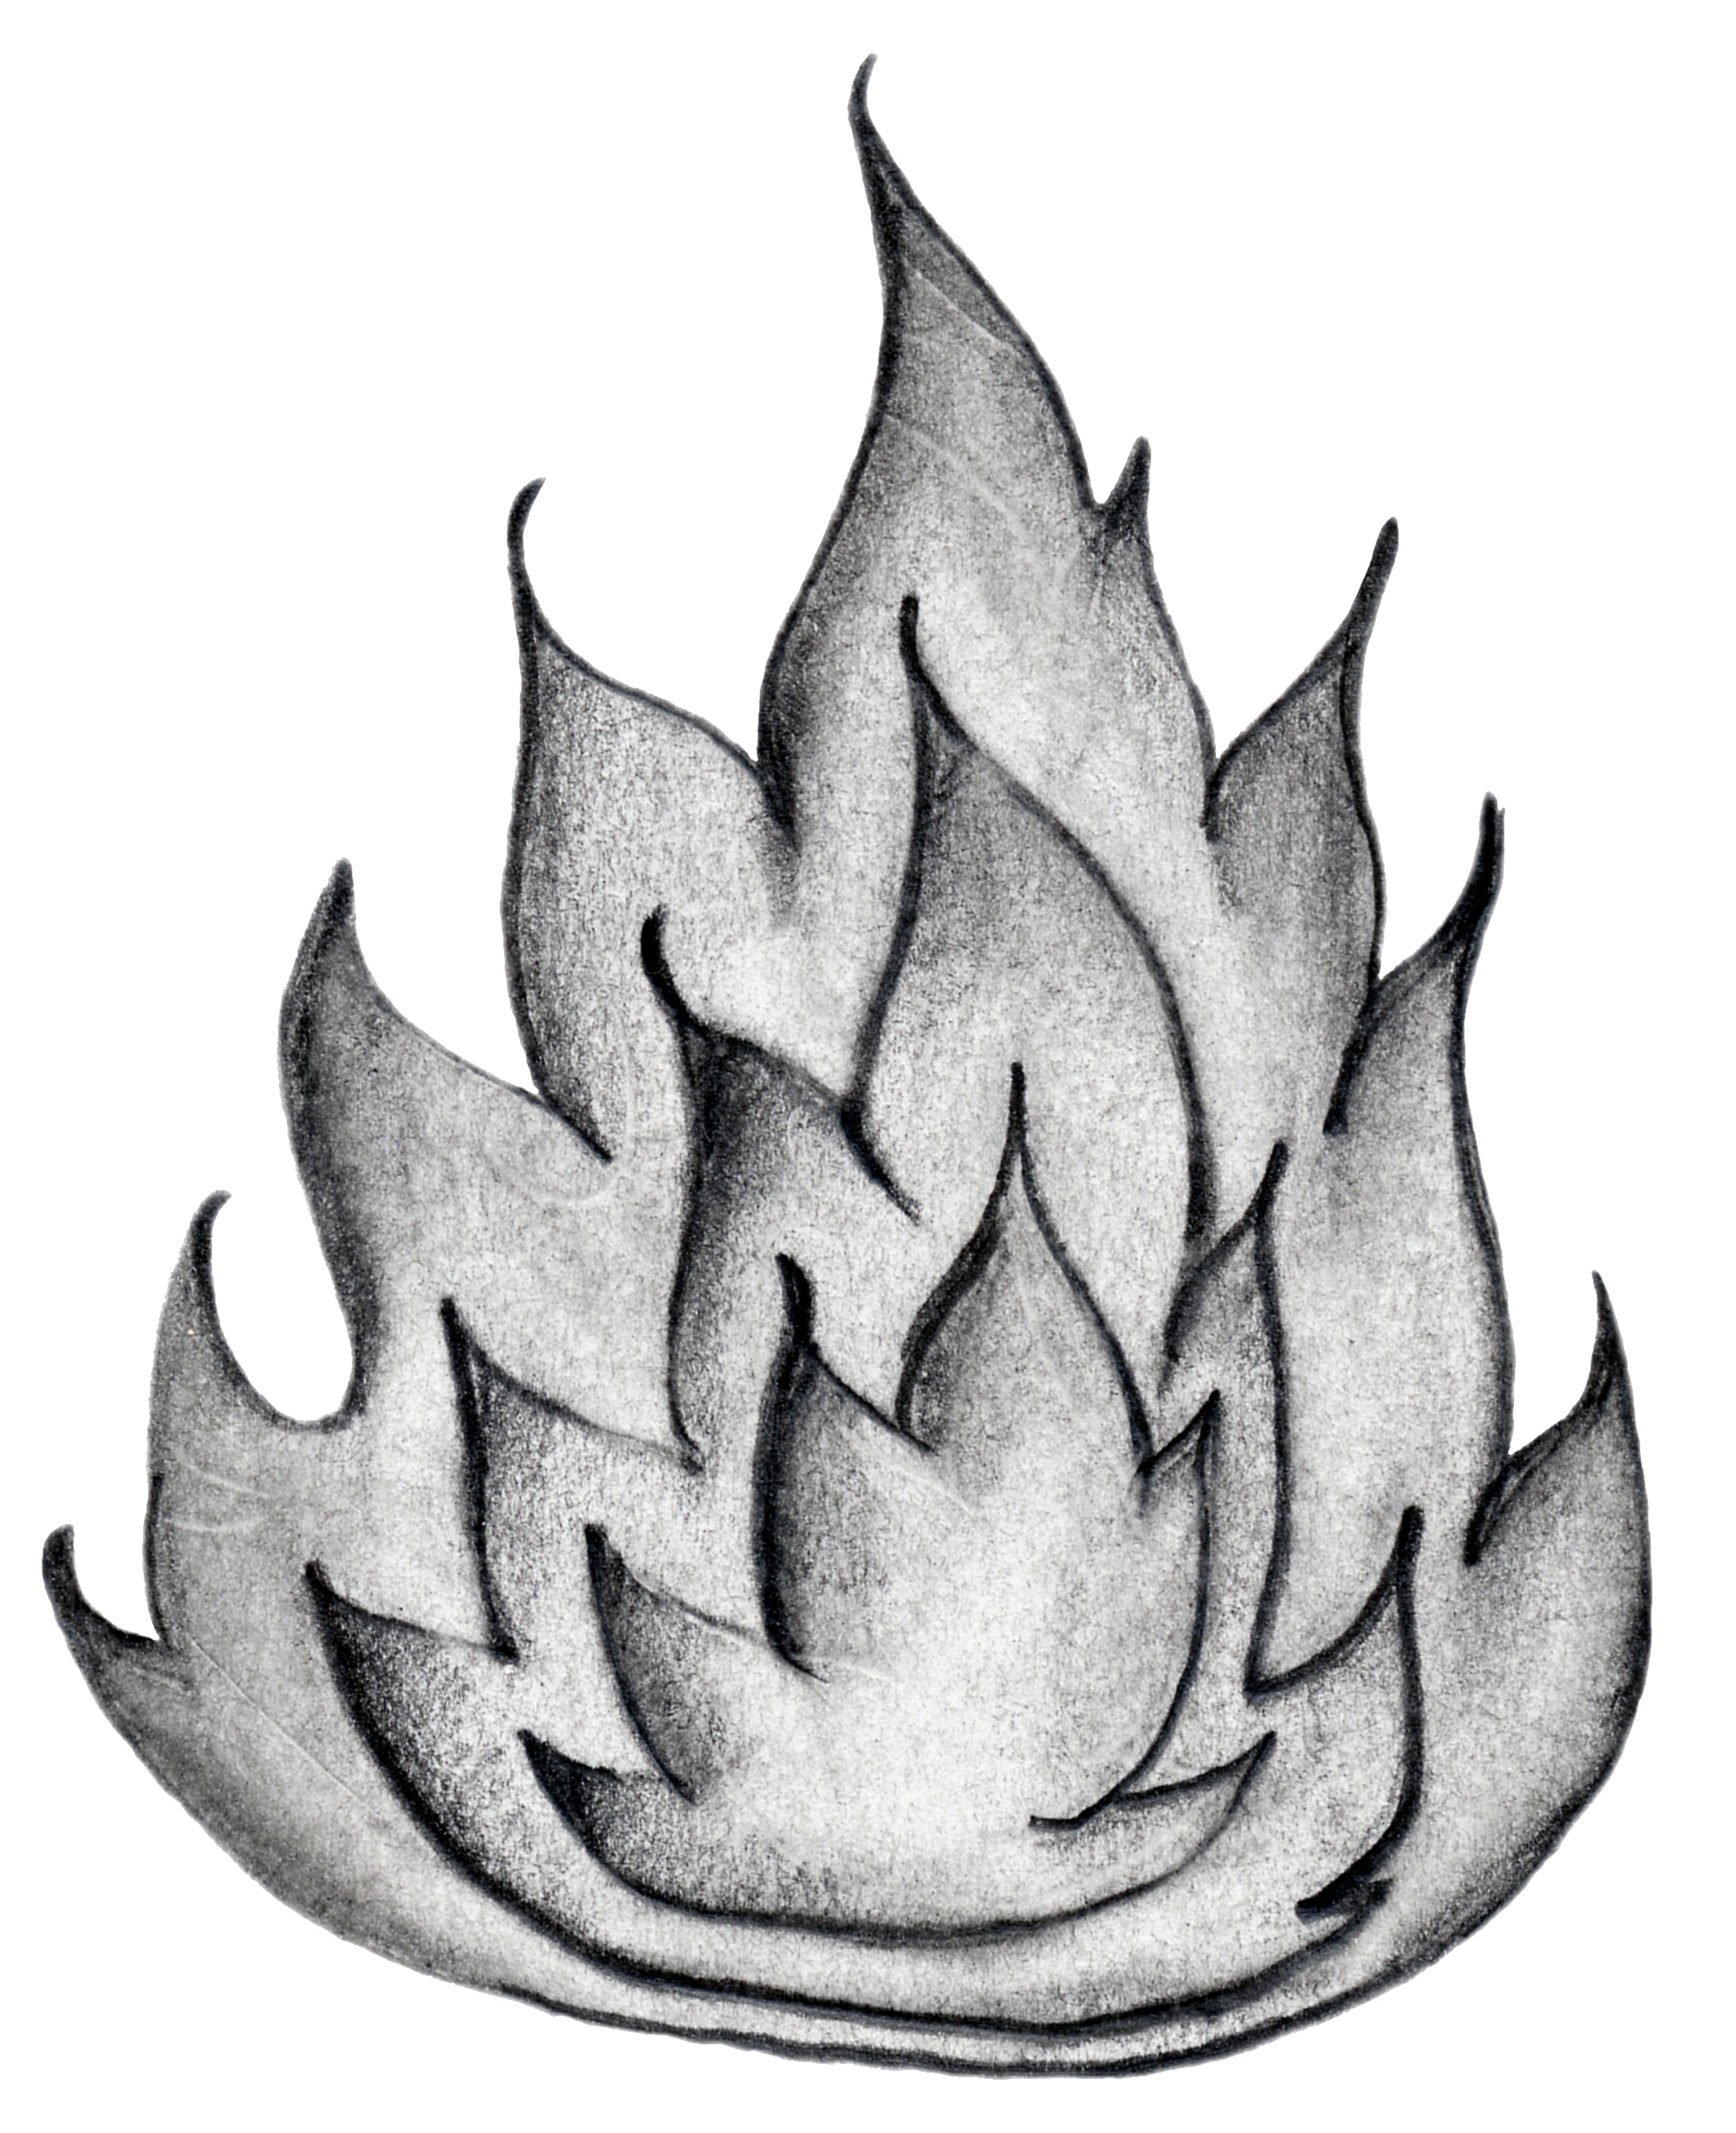 fire drawings design - photo #24